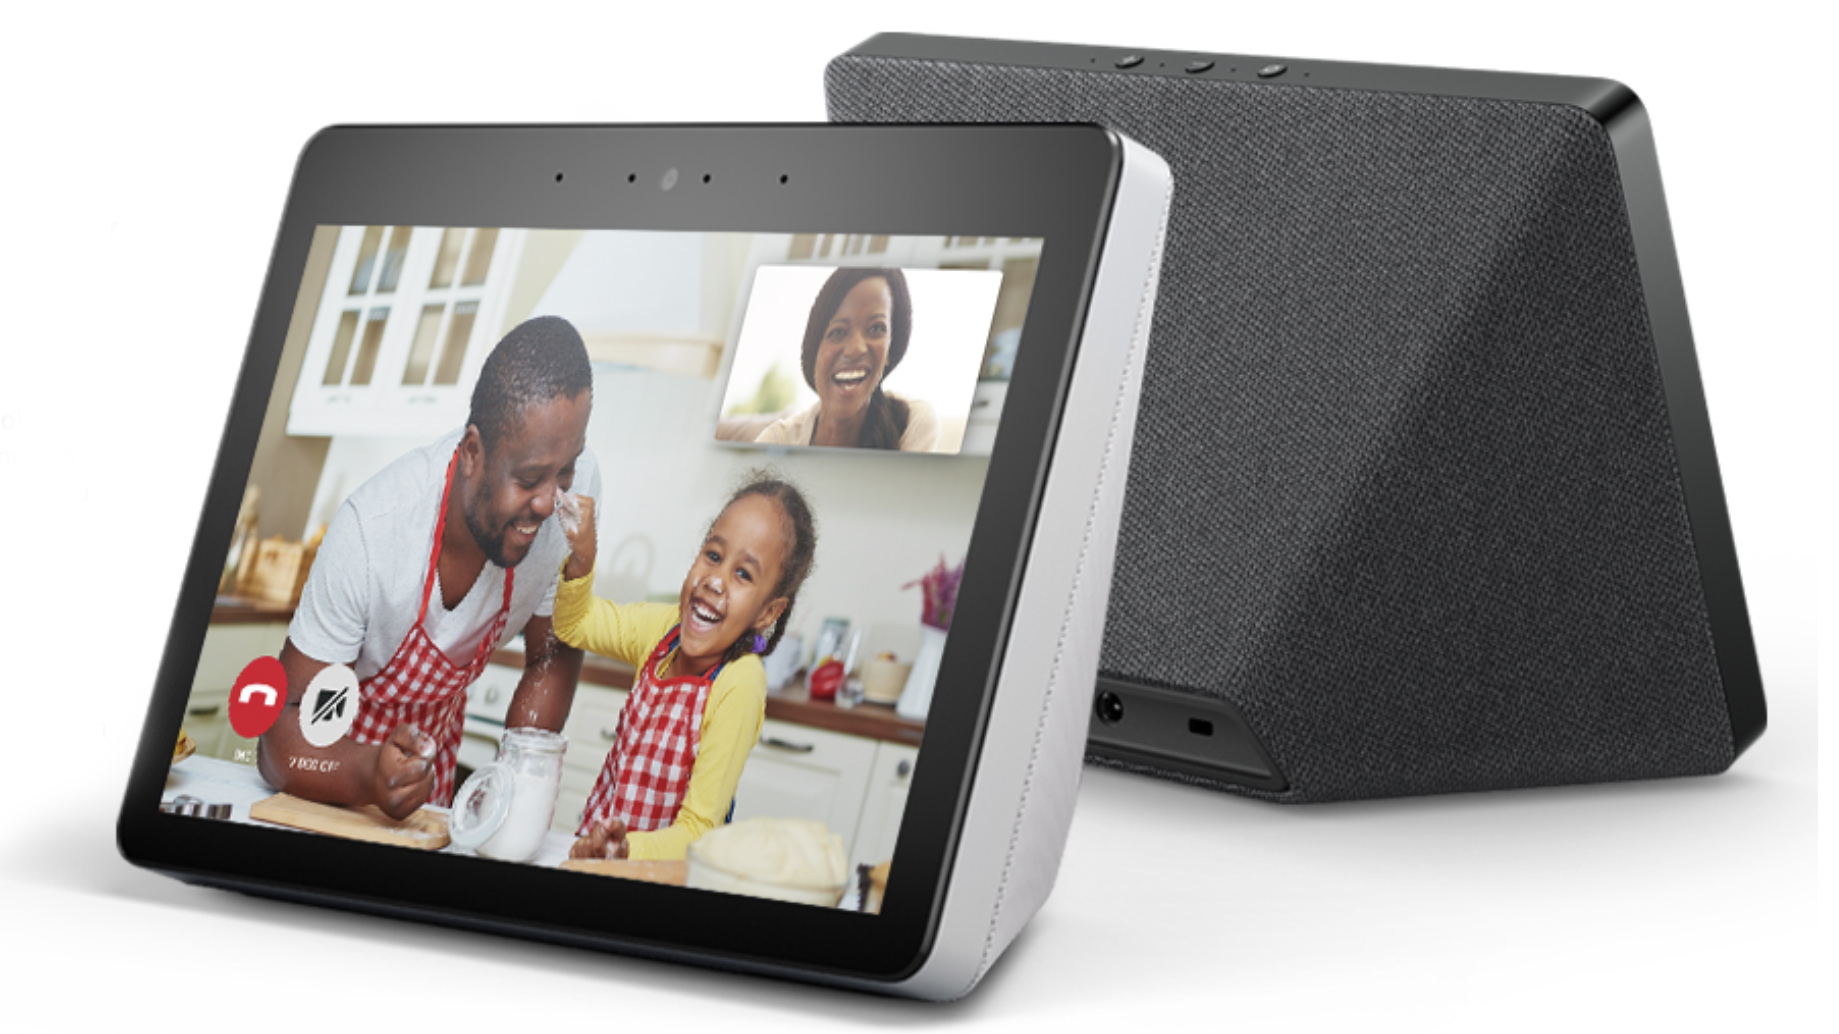 Google Nest Hub Max vs Amazon Echo Show: which smart display is better?